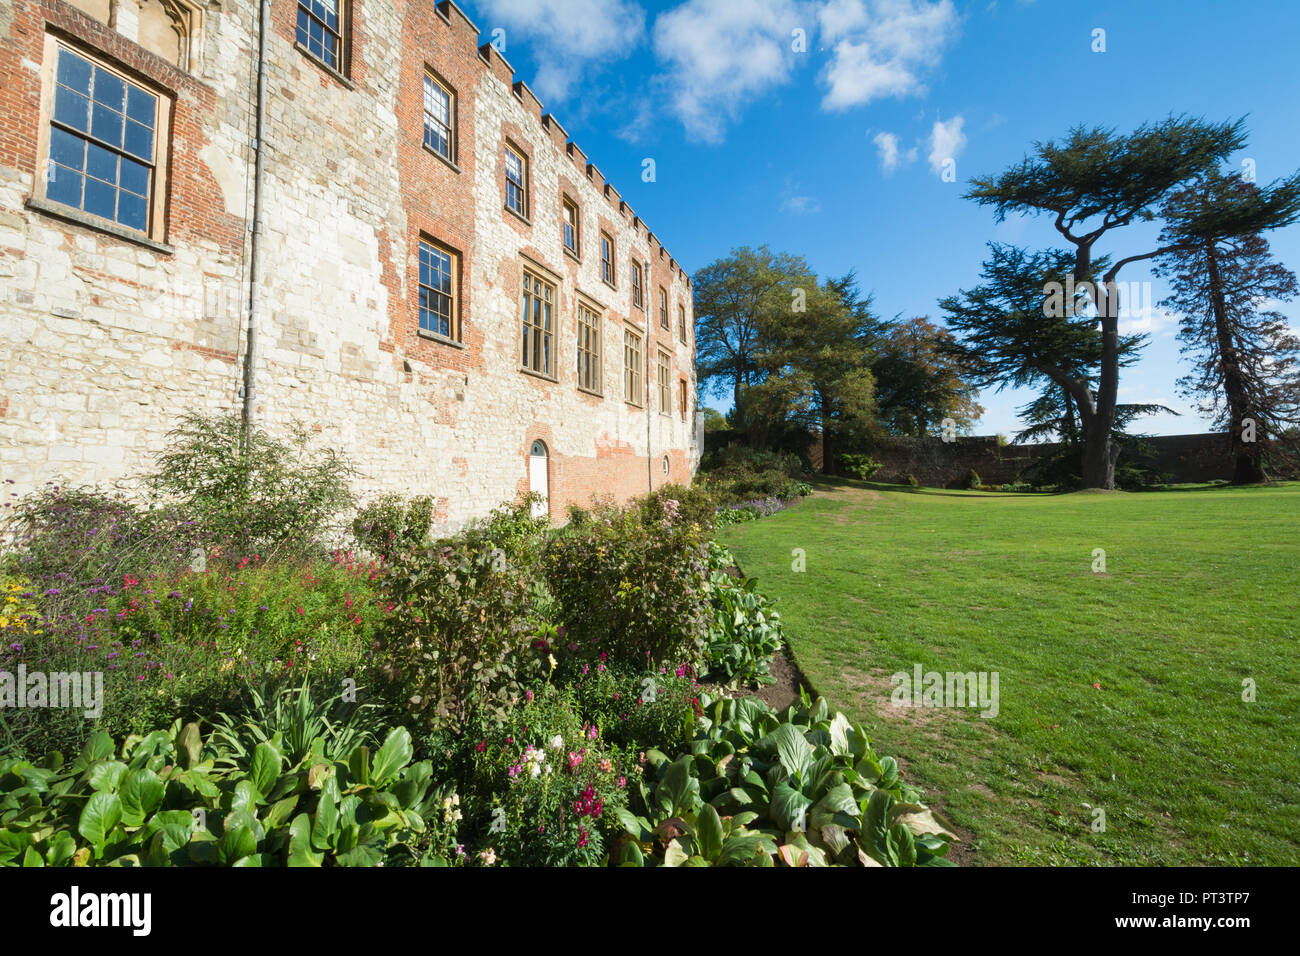 Farnham Castle Bishops Palace and gardens, a visitor attraction in Surrey, UK - Stock Image